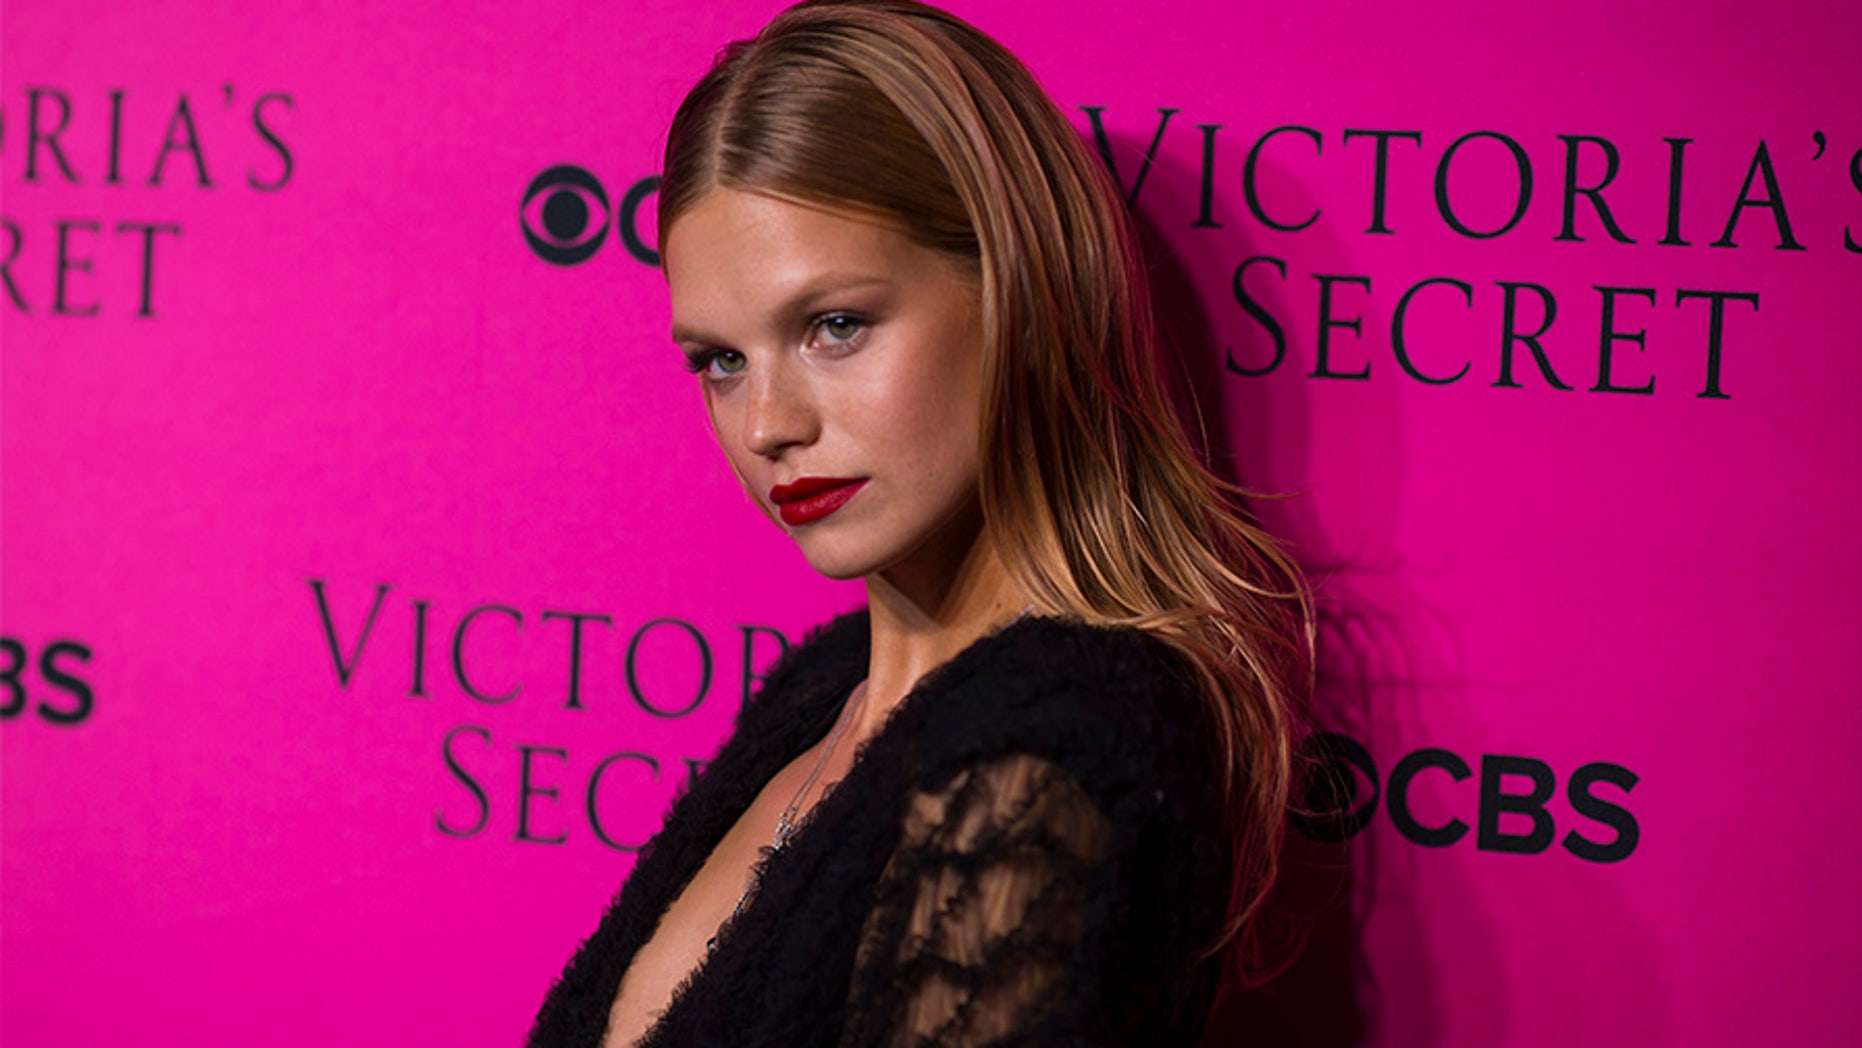 NEW YORK, NY - NOVEMBER 28:  Nadine Leopold attends the 2017 Victoria's Secret Fashion Show viewing party pink carpet at Spring Studios on November 28, 2017 in New York City.  (Photo by Michael Stewart/WireImage)